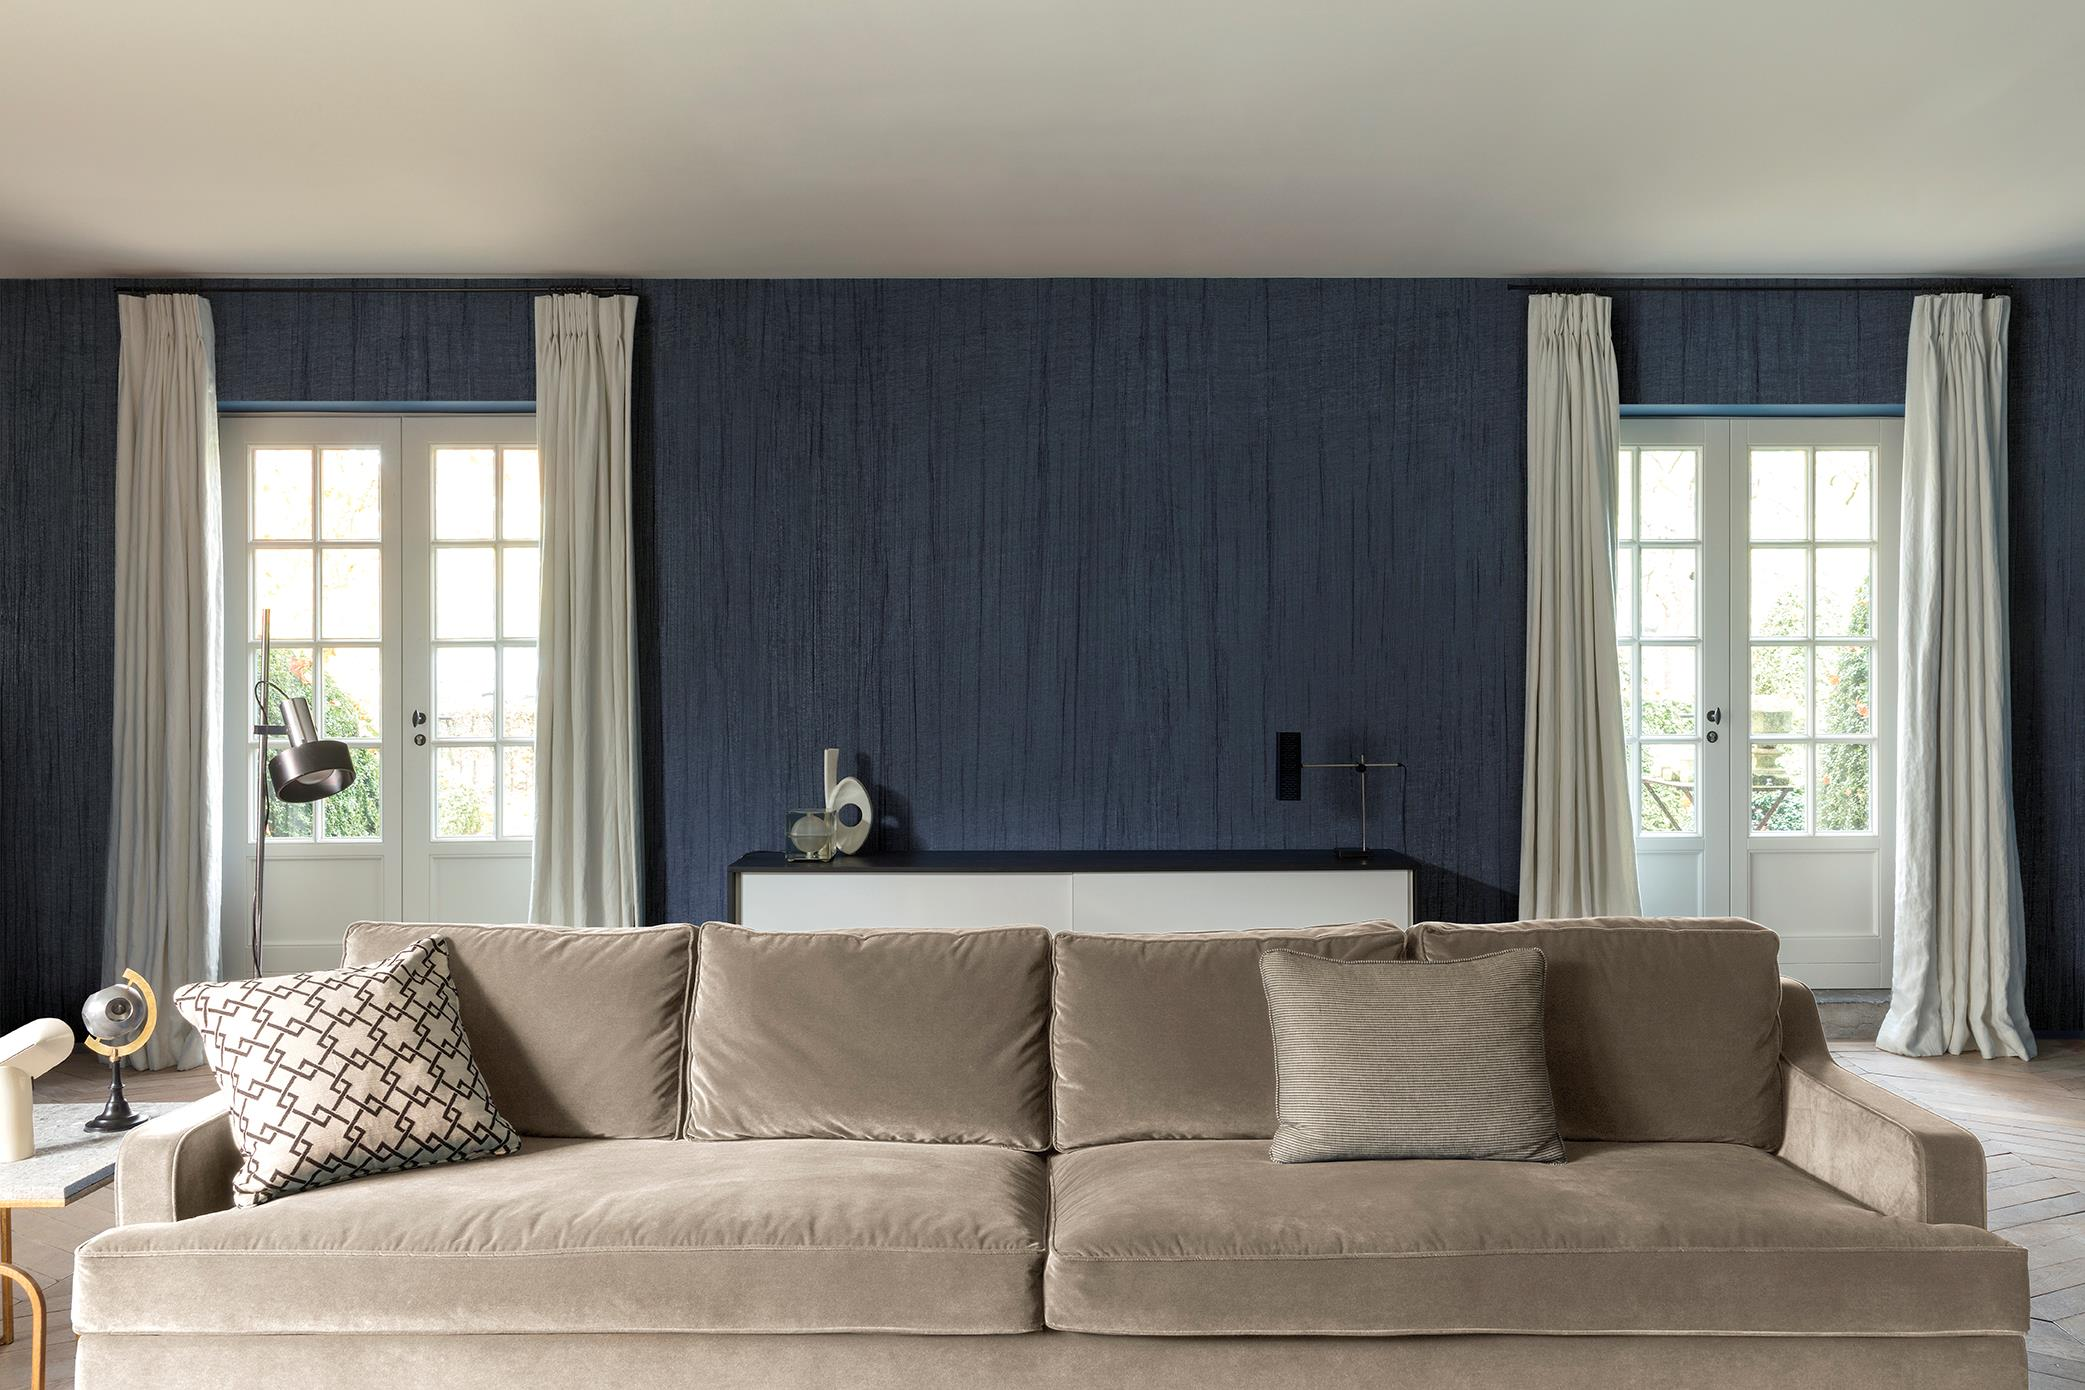 Superior textile wall covering by TISSAGE MAHIEU